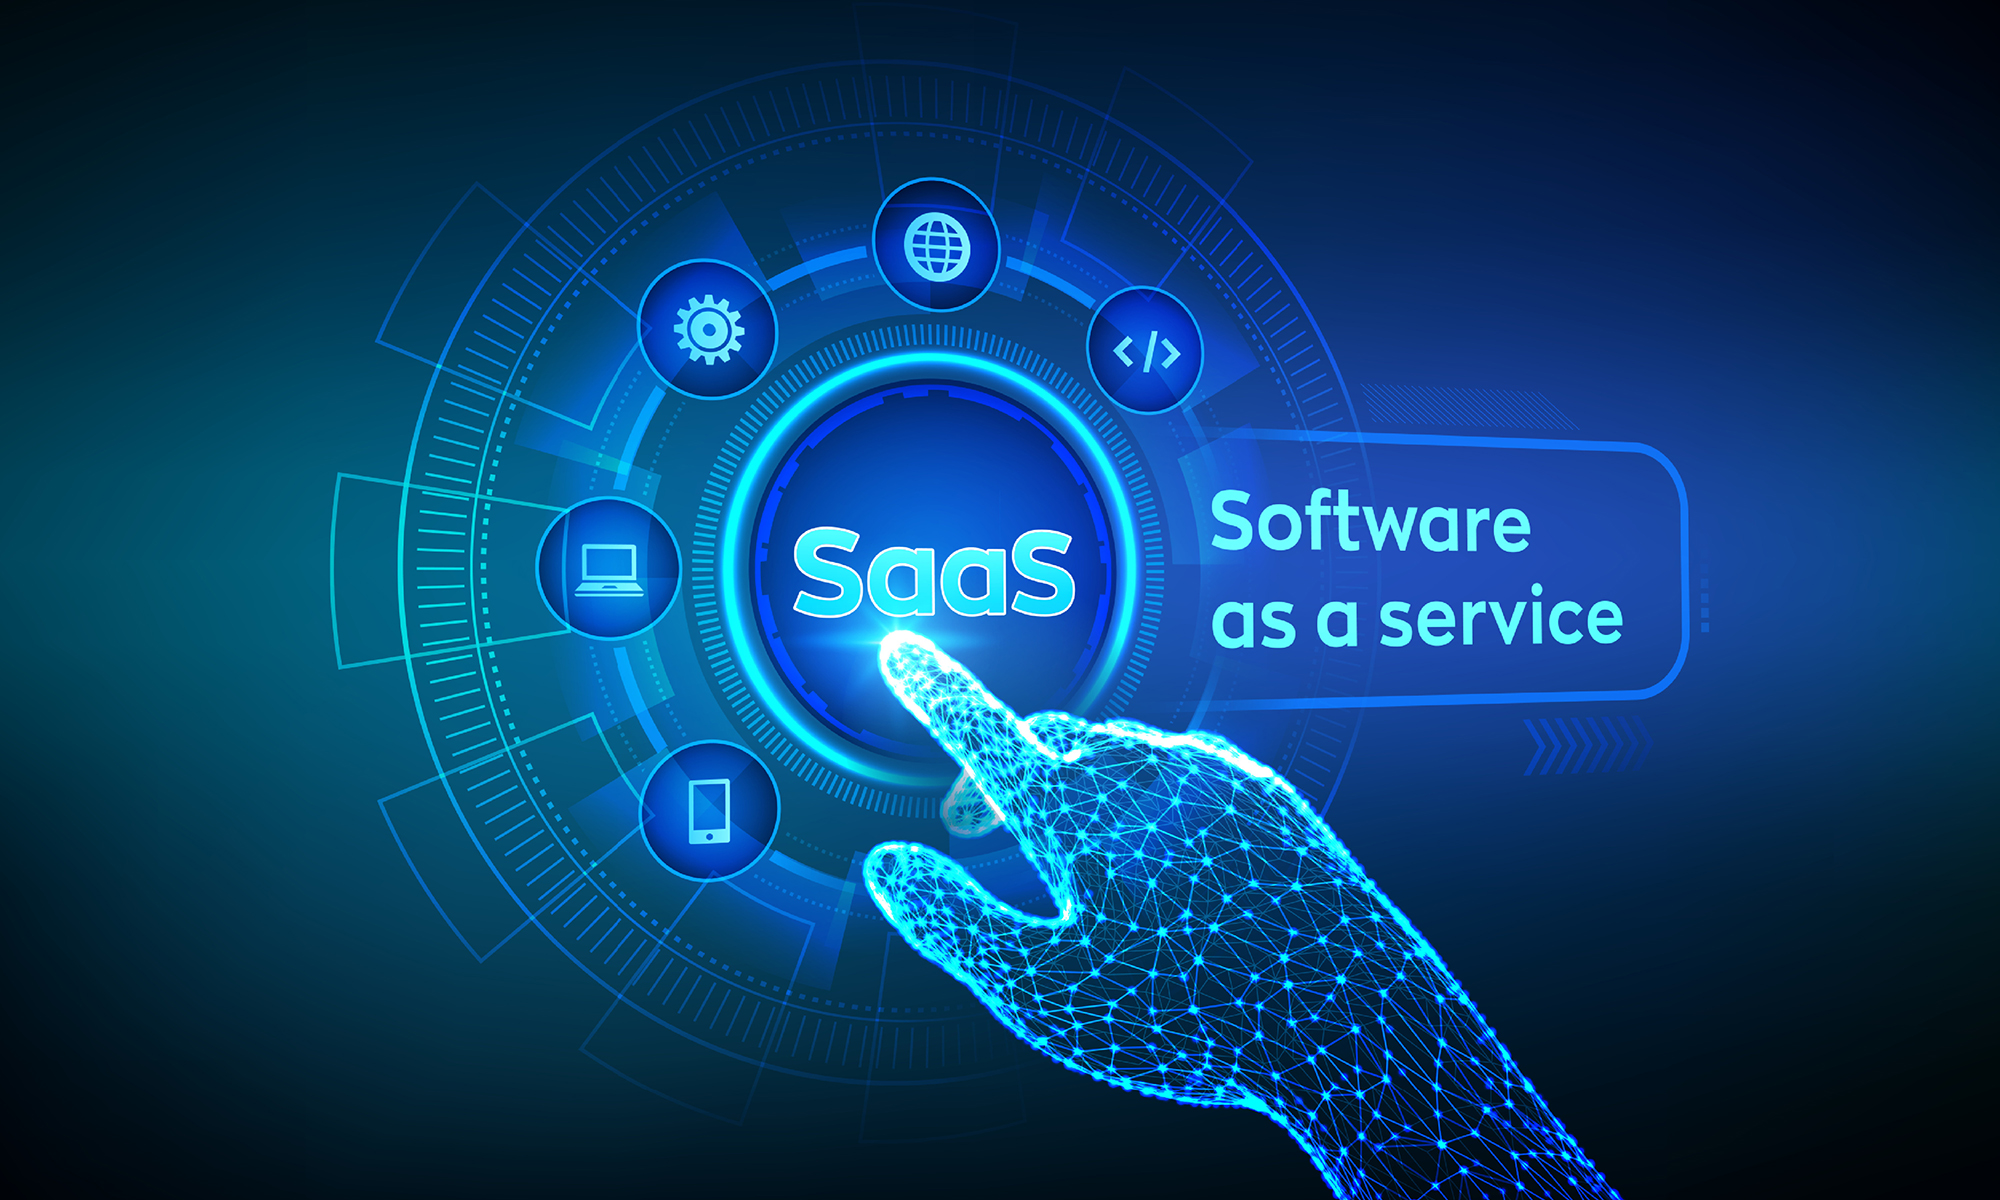 SAAS: Software as a Service